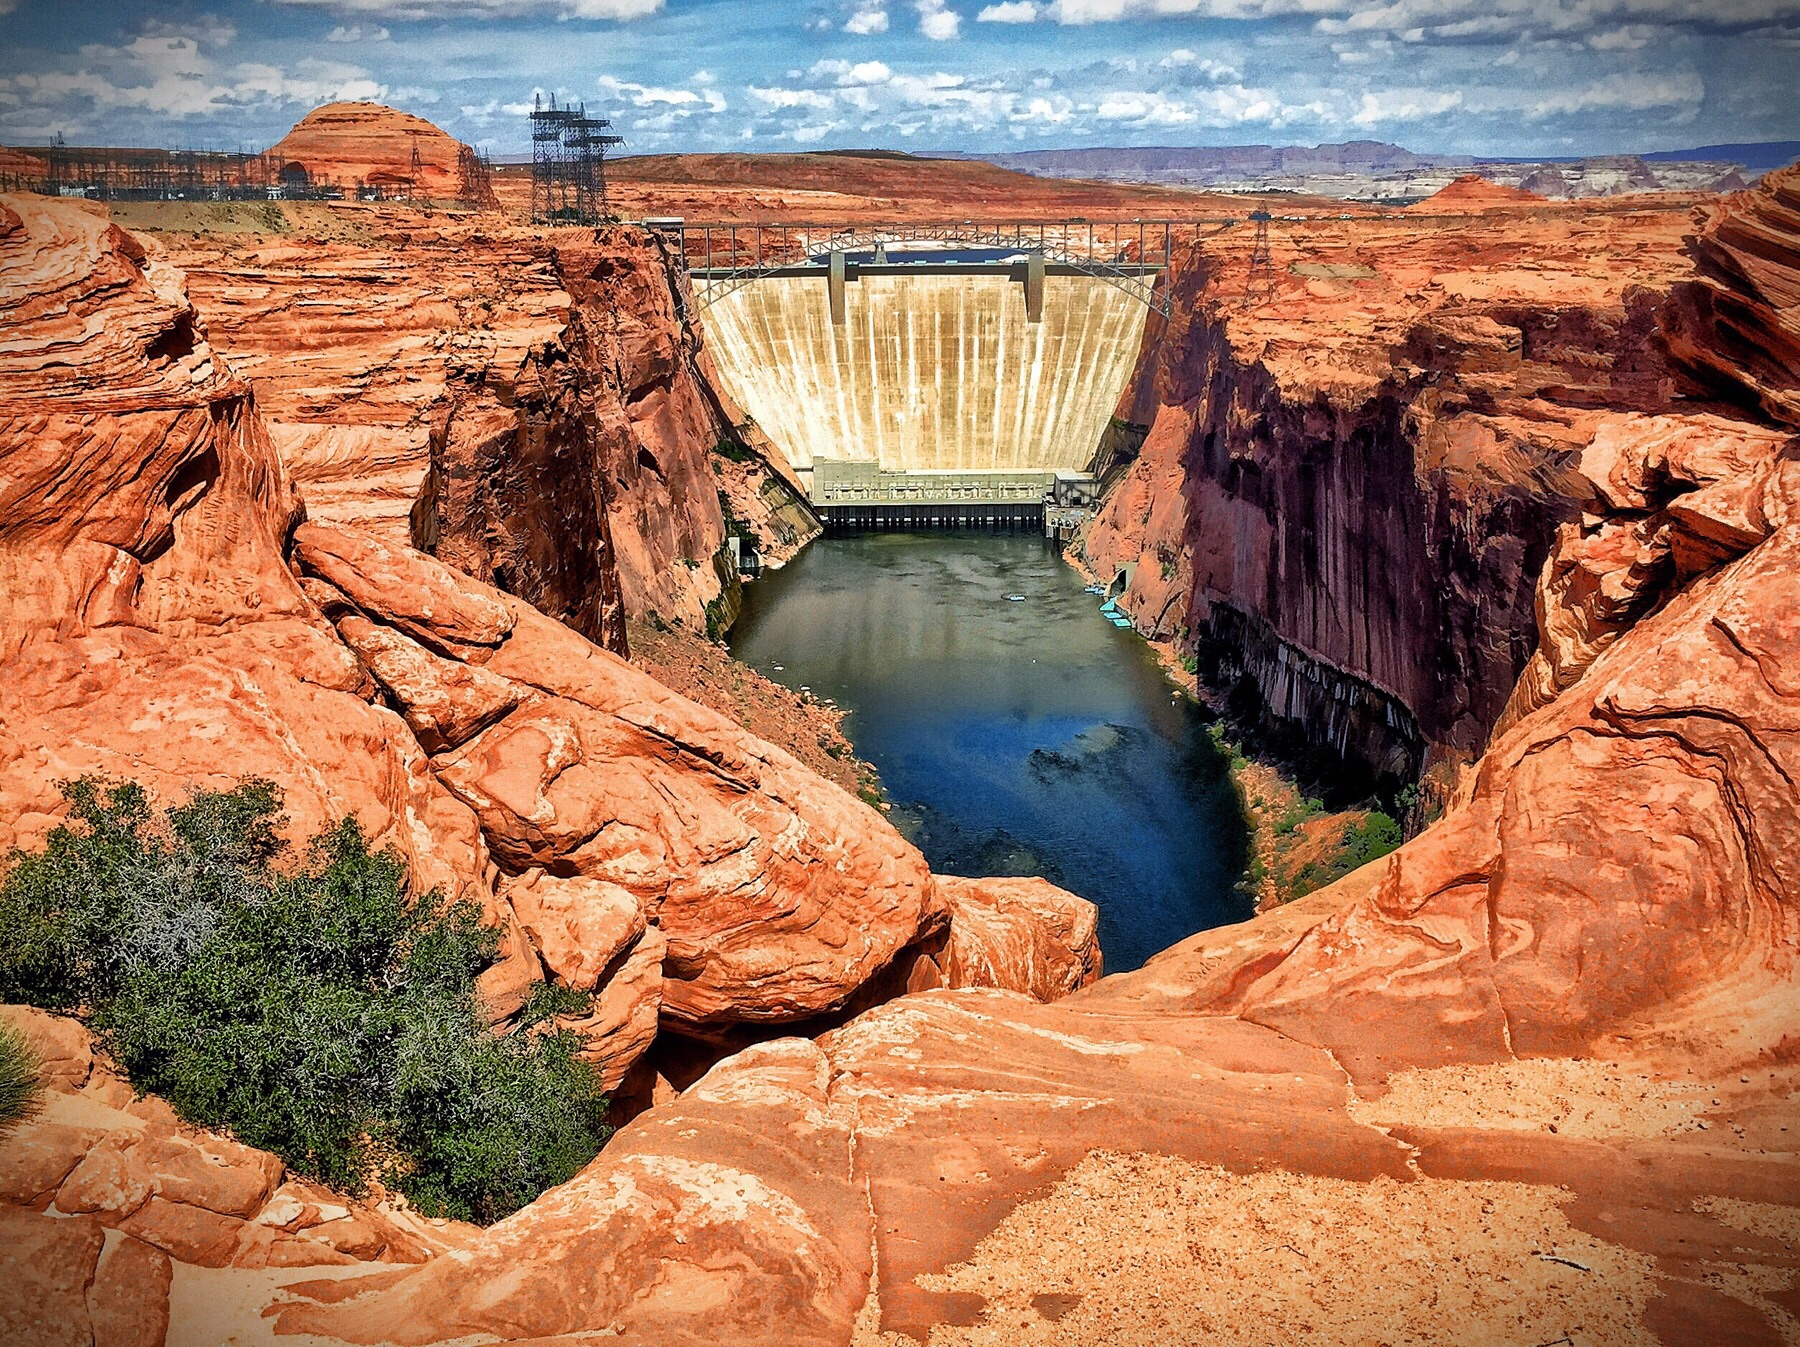 Clunkmonkey visits the Glen Canyon Dam